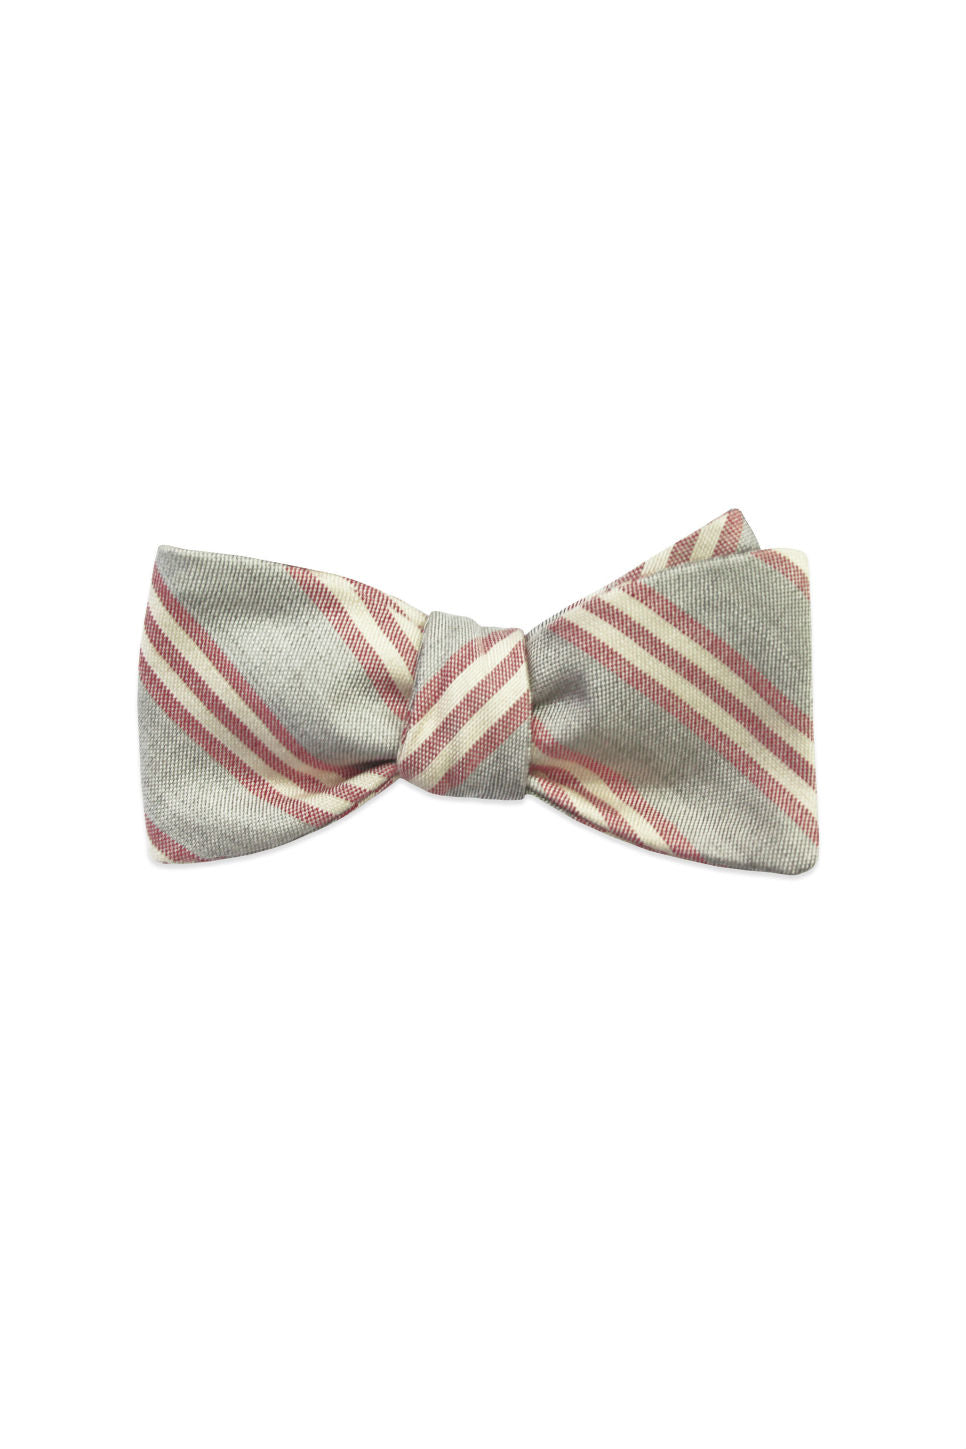 THE CYRUS BOW TIE Red and Gray